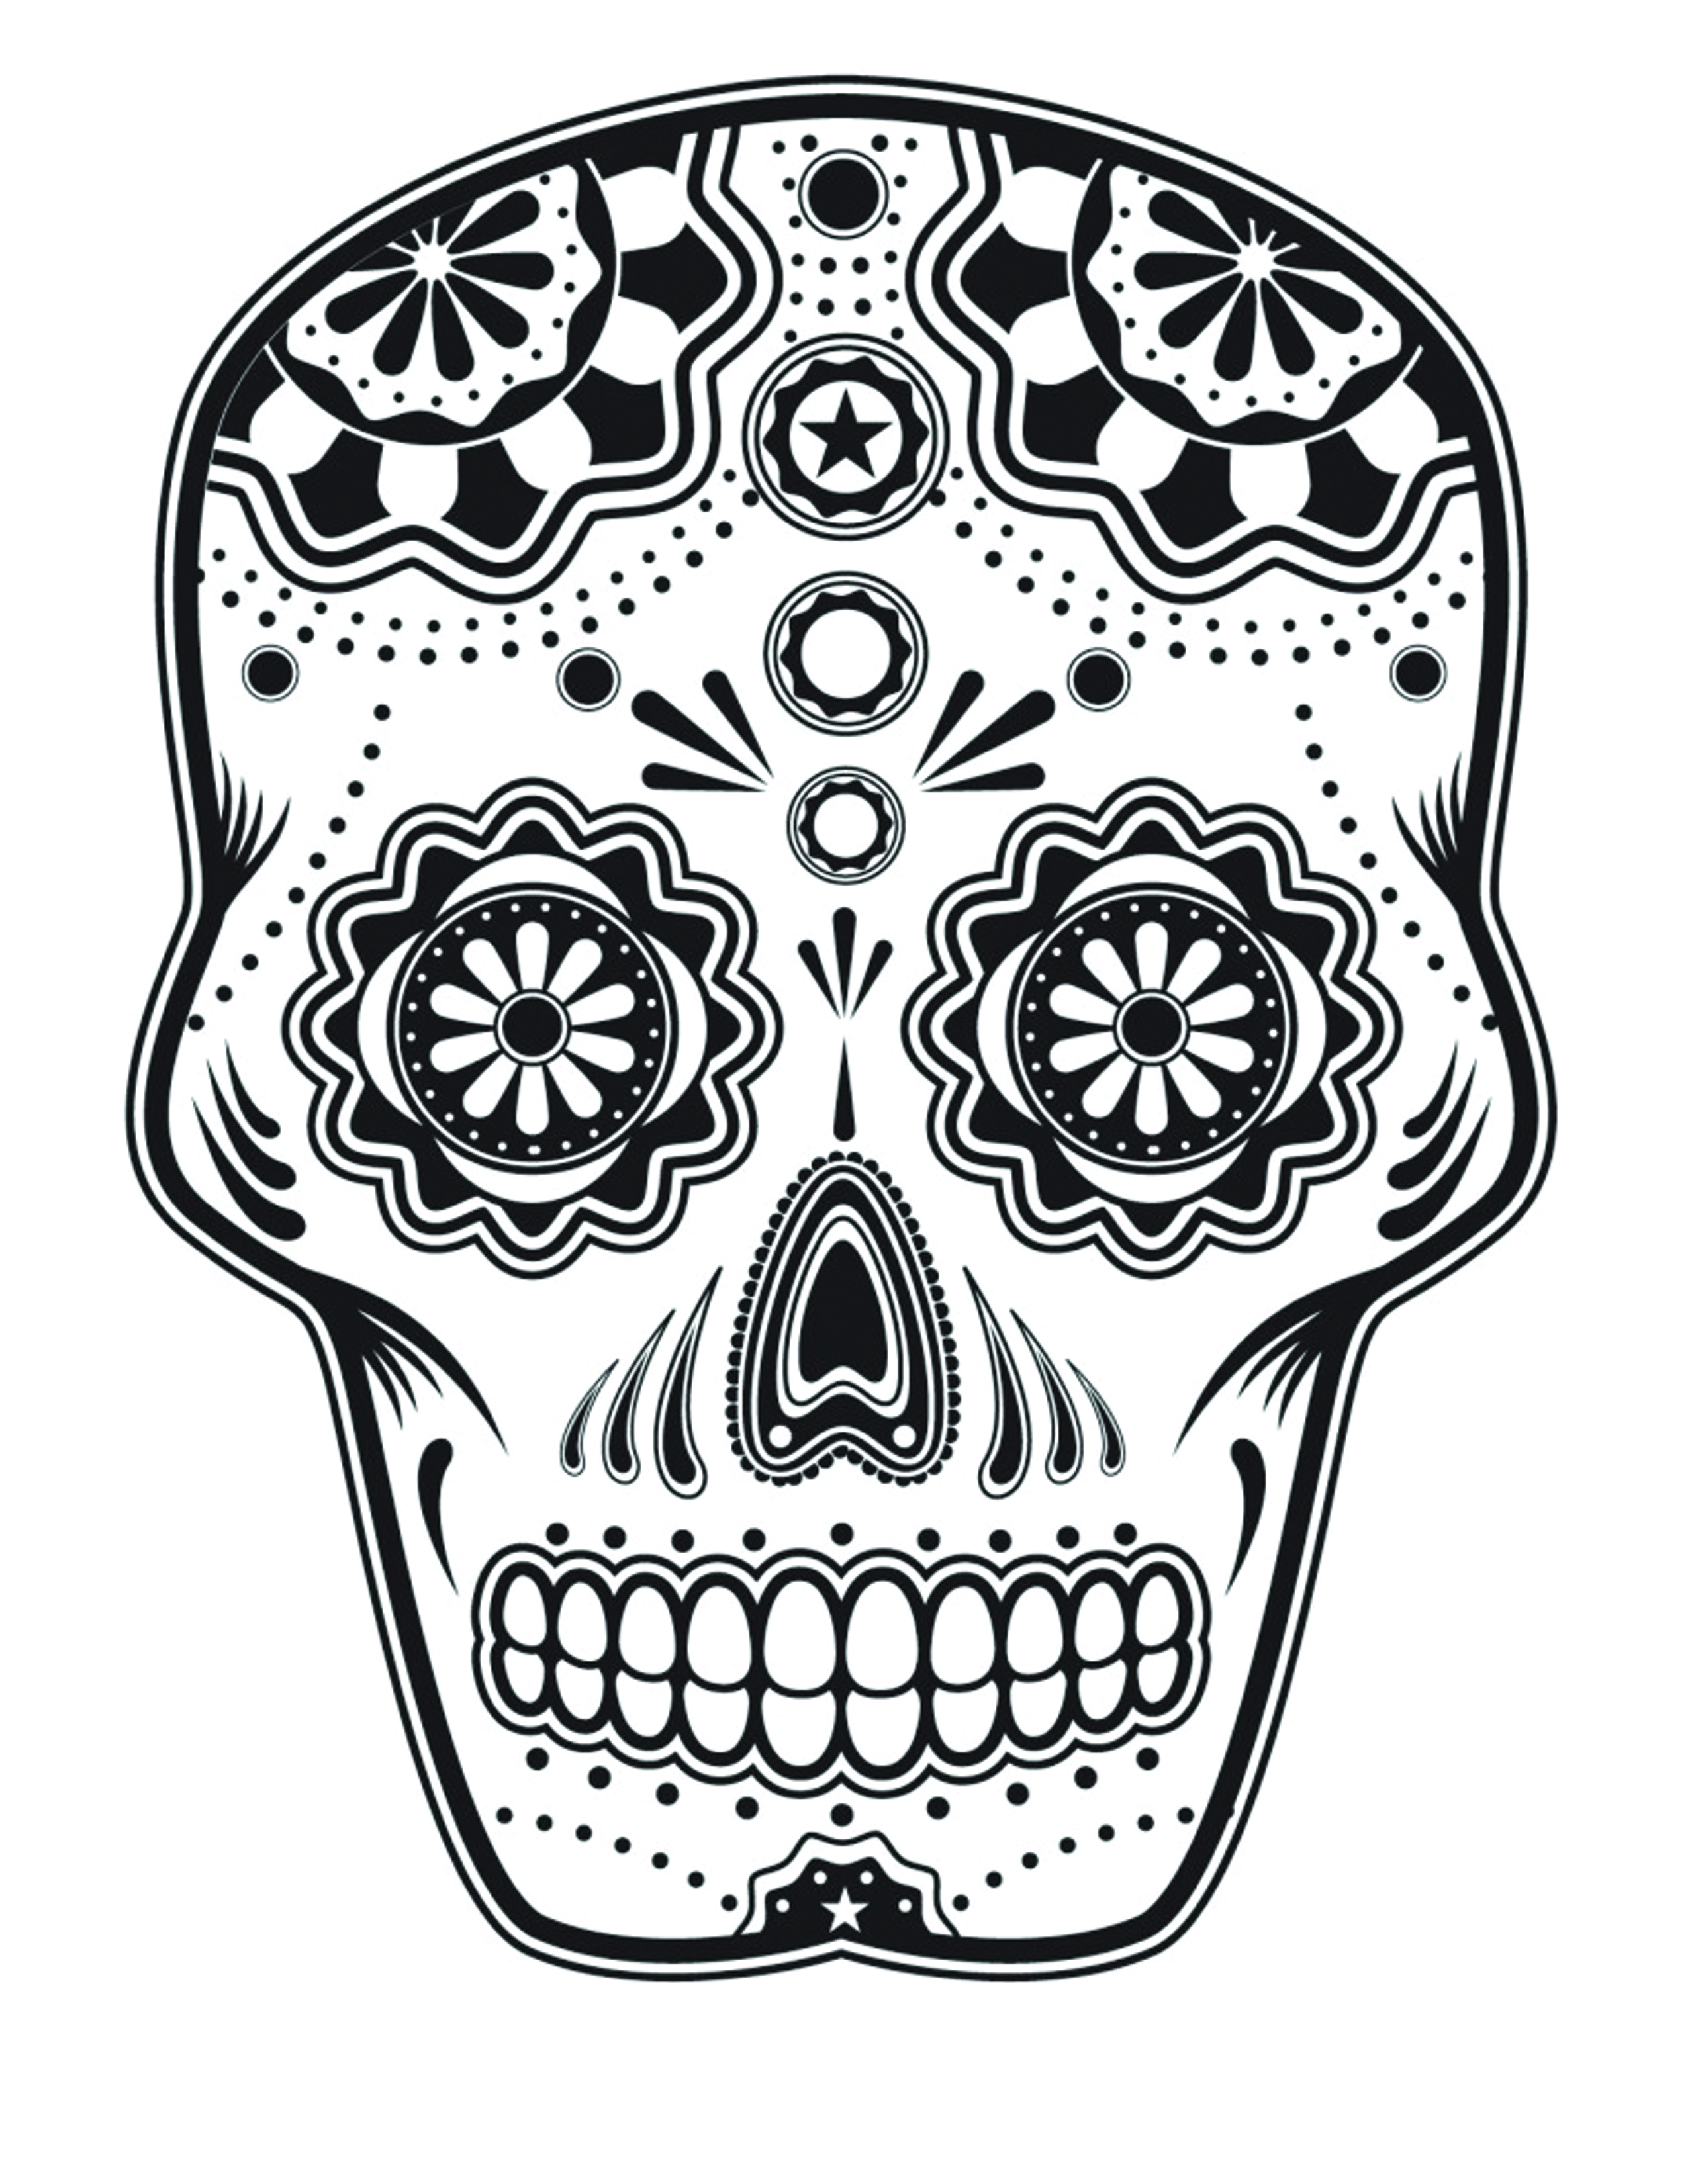 party time - Cinco De Mayo Skull Coloring Pages